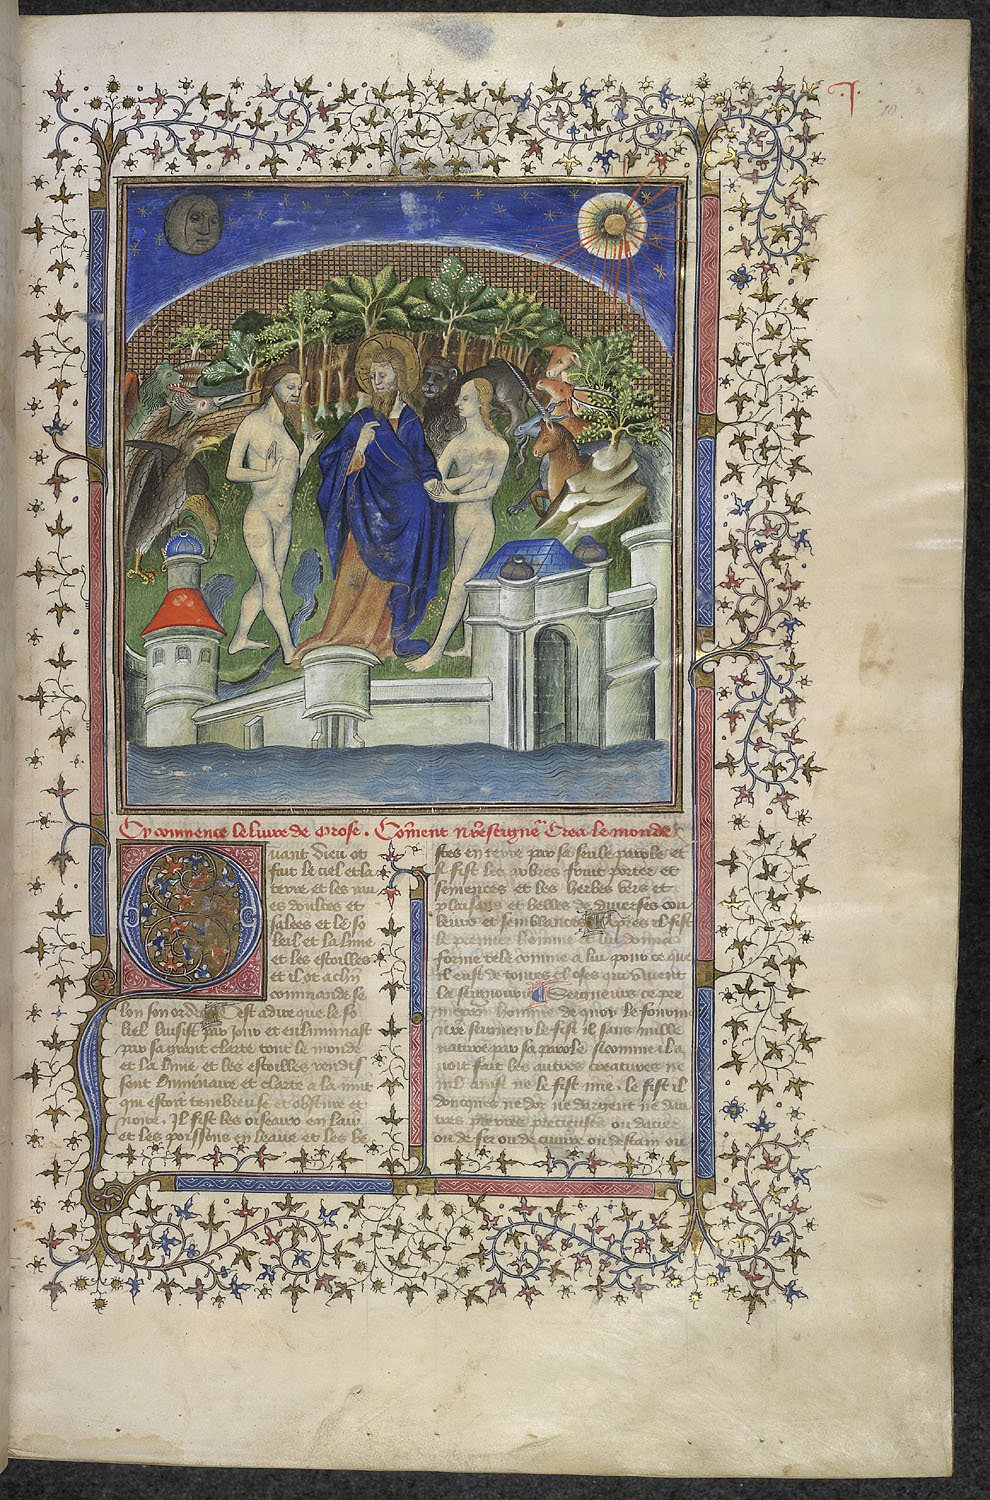 London, British Library, MS Egerton 912 (courtesy of BL.uk, public domain)